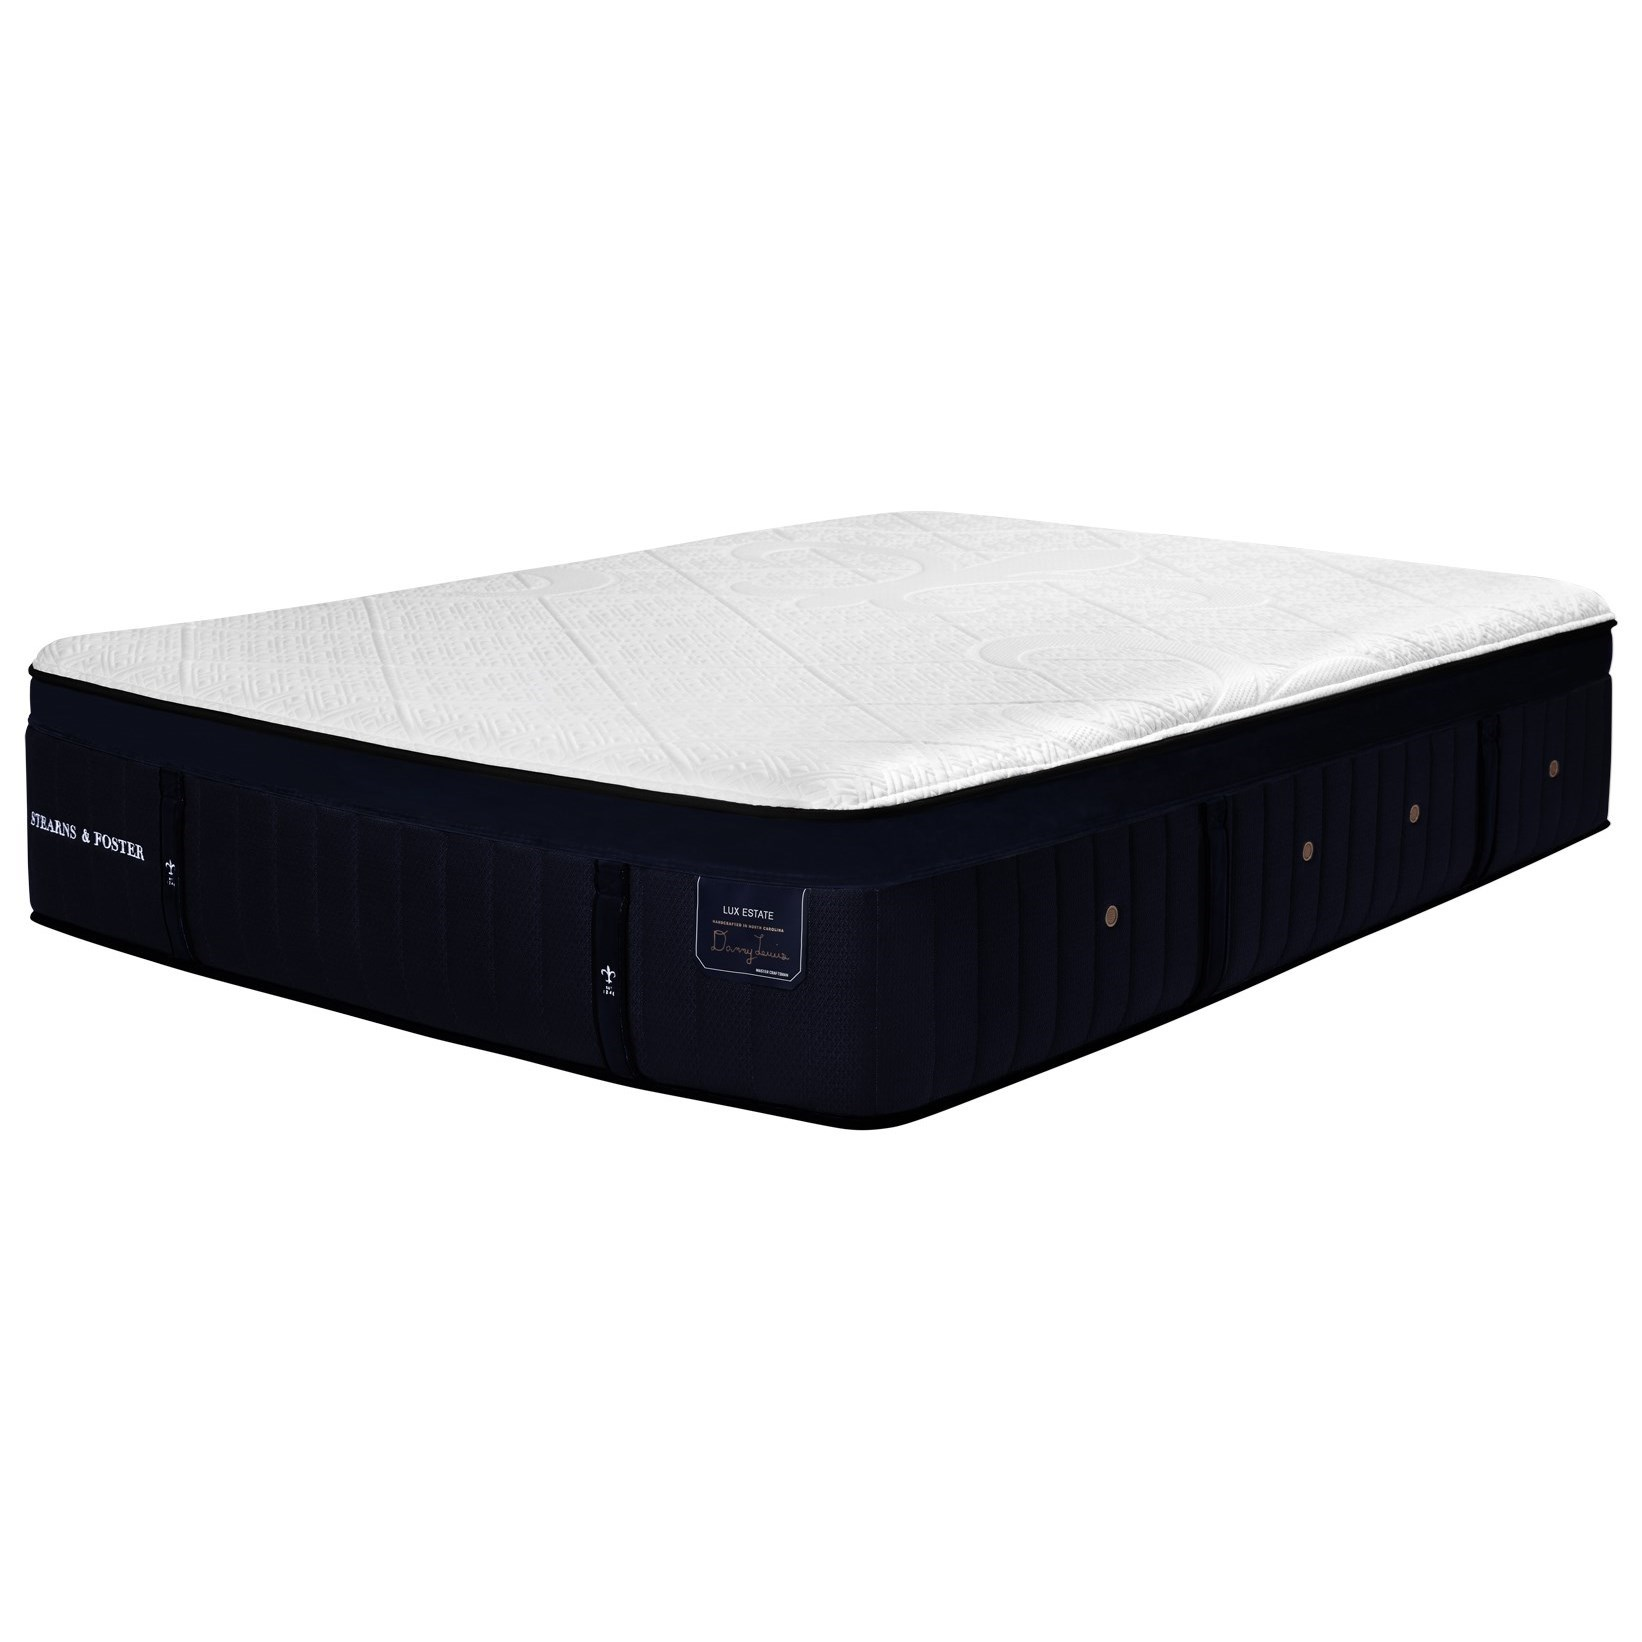 "Pollock  Pollock Queen 16"" Premium Hybrid Mattress by Stearns & Foster at Morris Home"